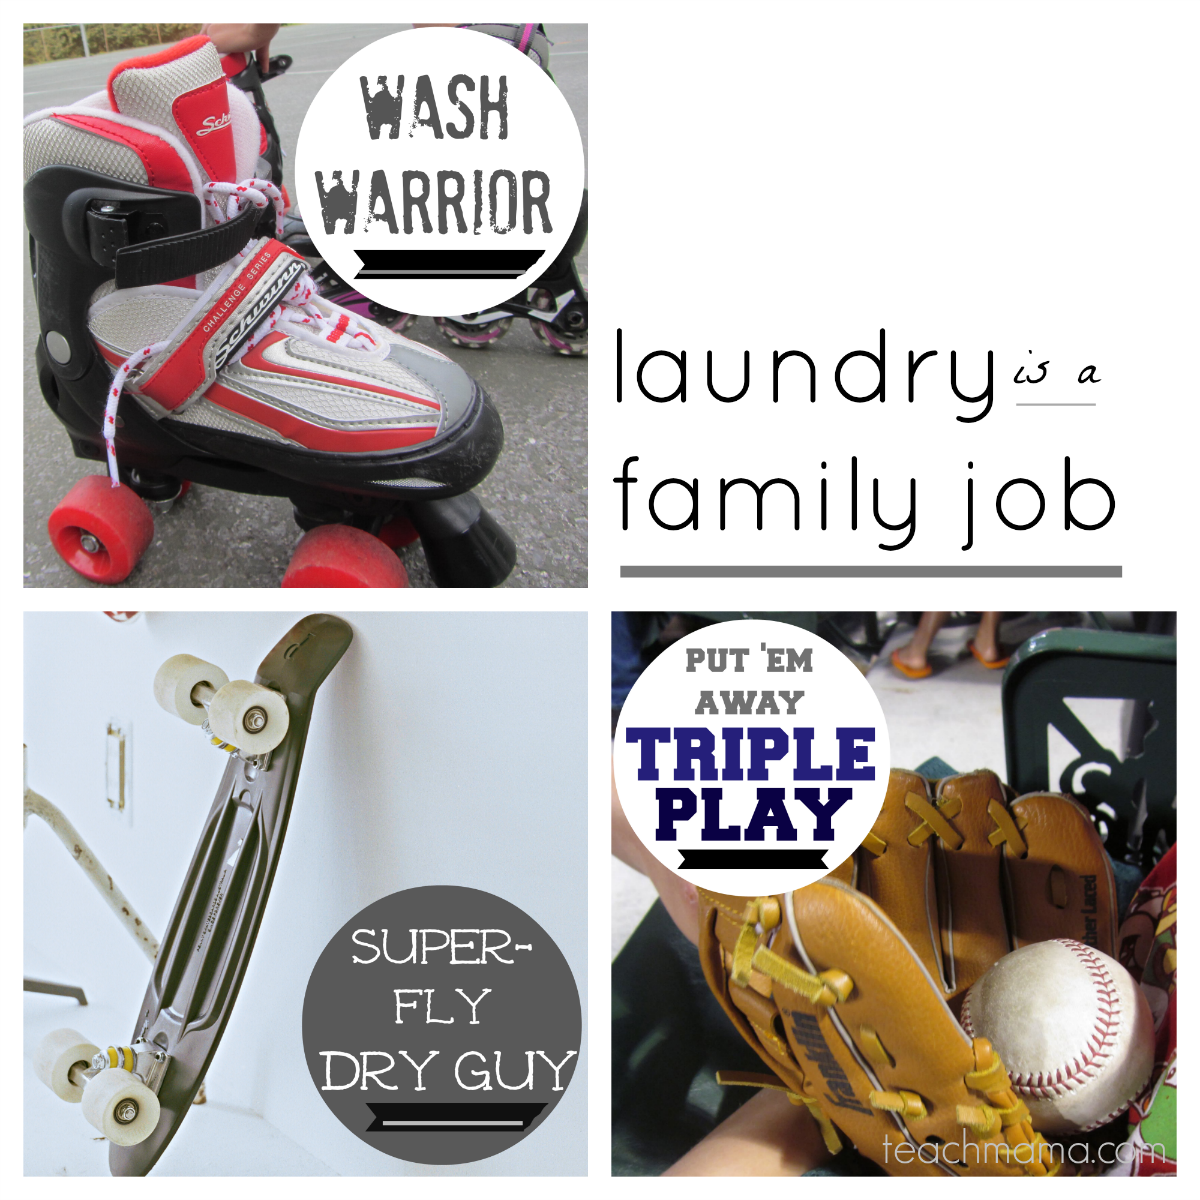 teach kids how to do laundry | family job | teachmama.com